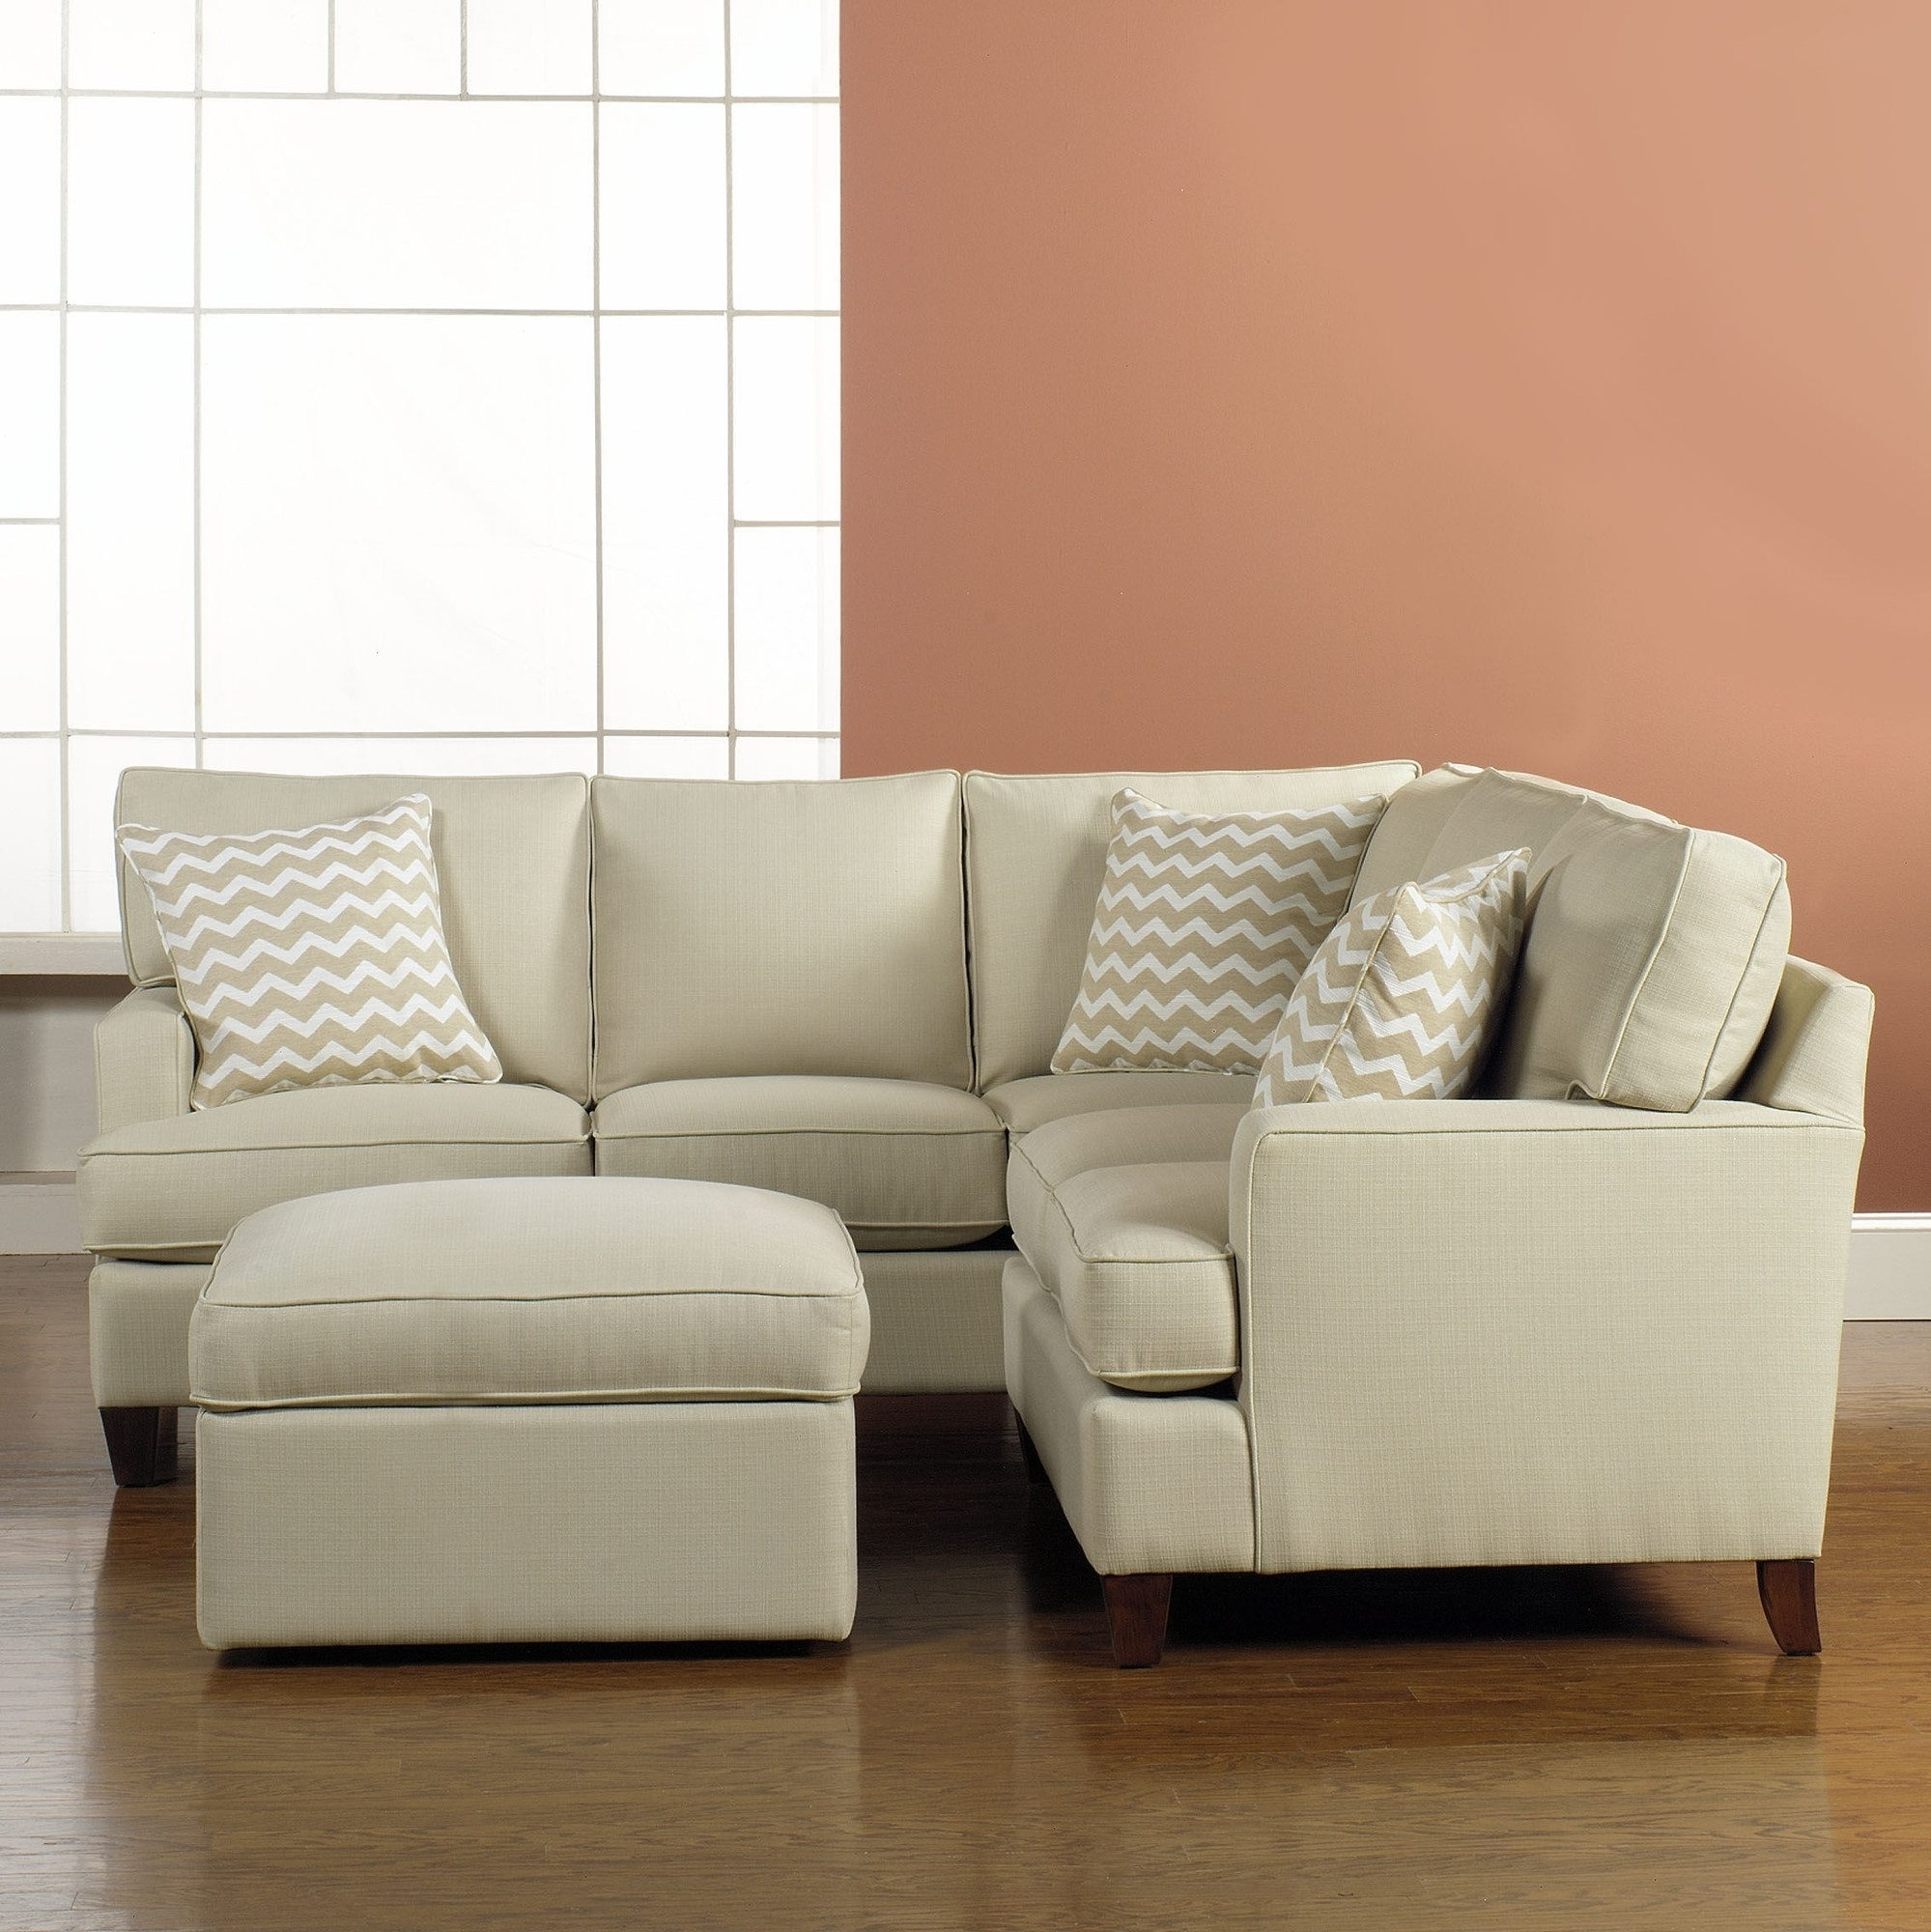 Collection Sectional Sofas Rochester Ny – Mediasupload Inside Rochester Ny Sectional Sofas (View 3 of 10)